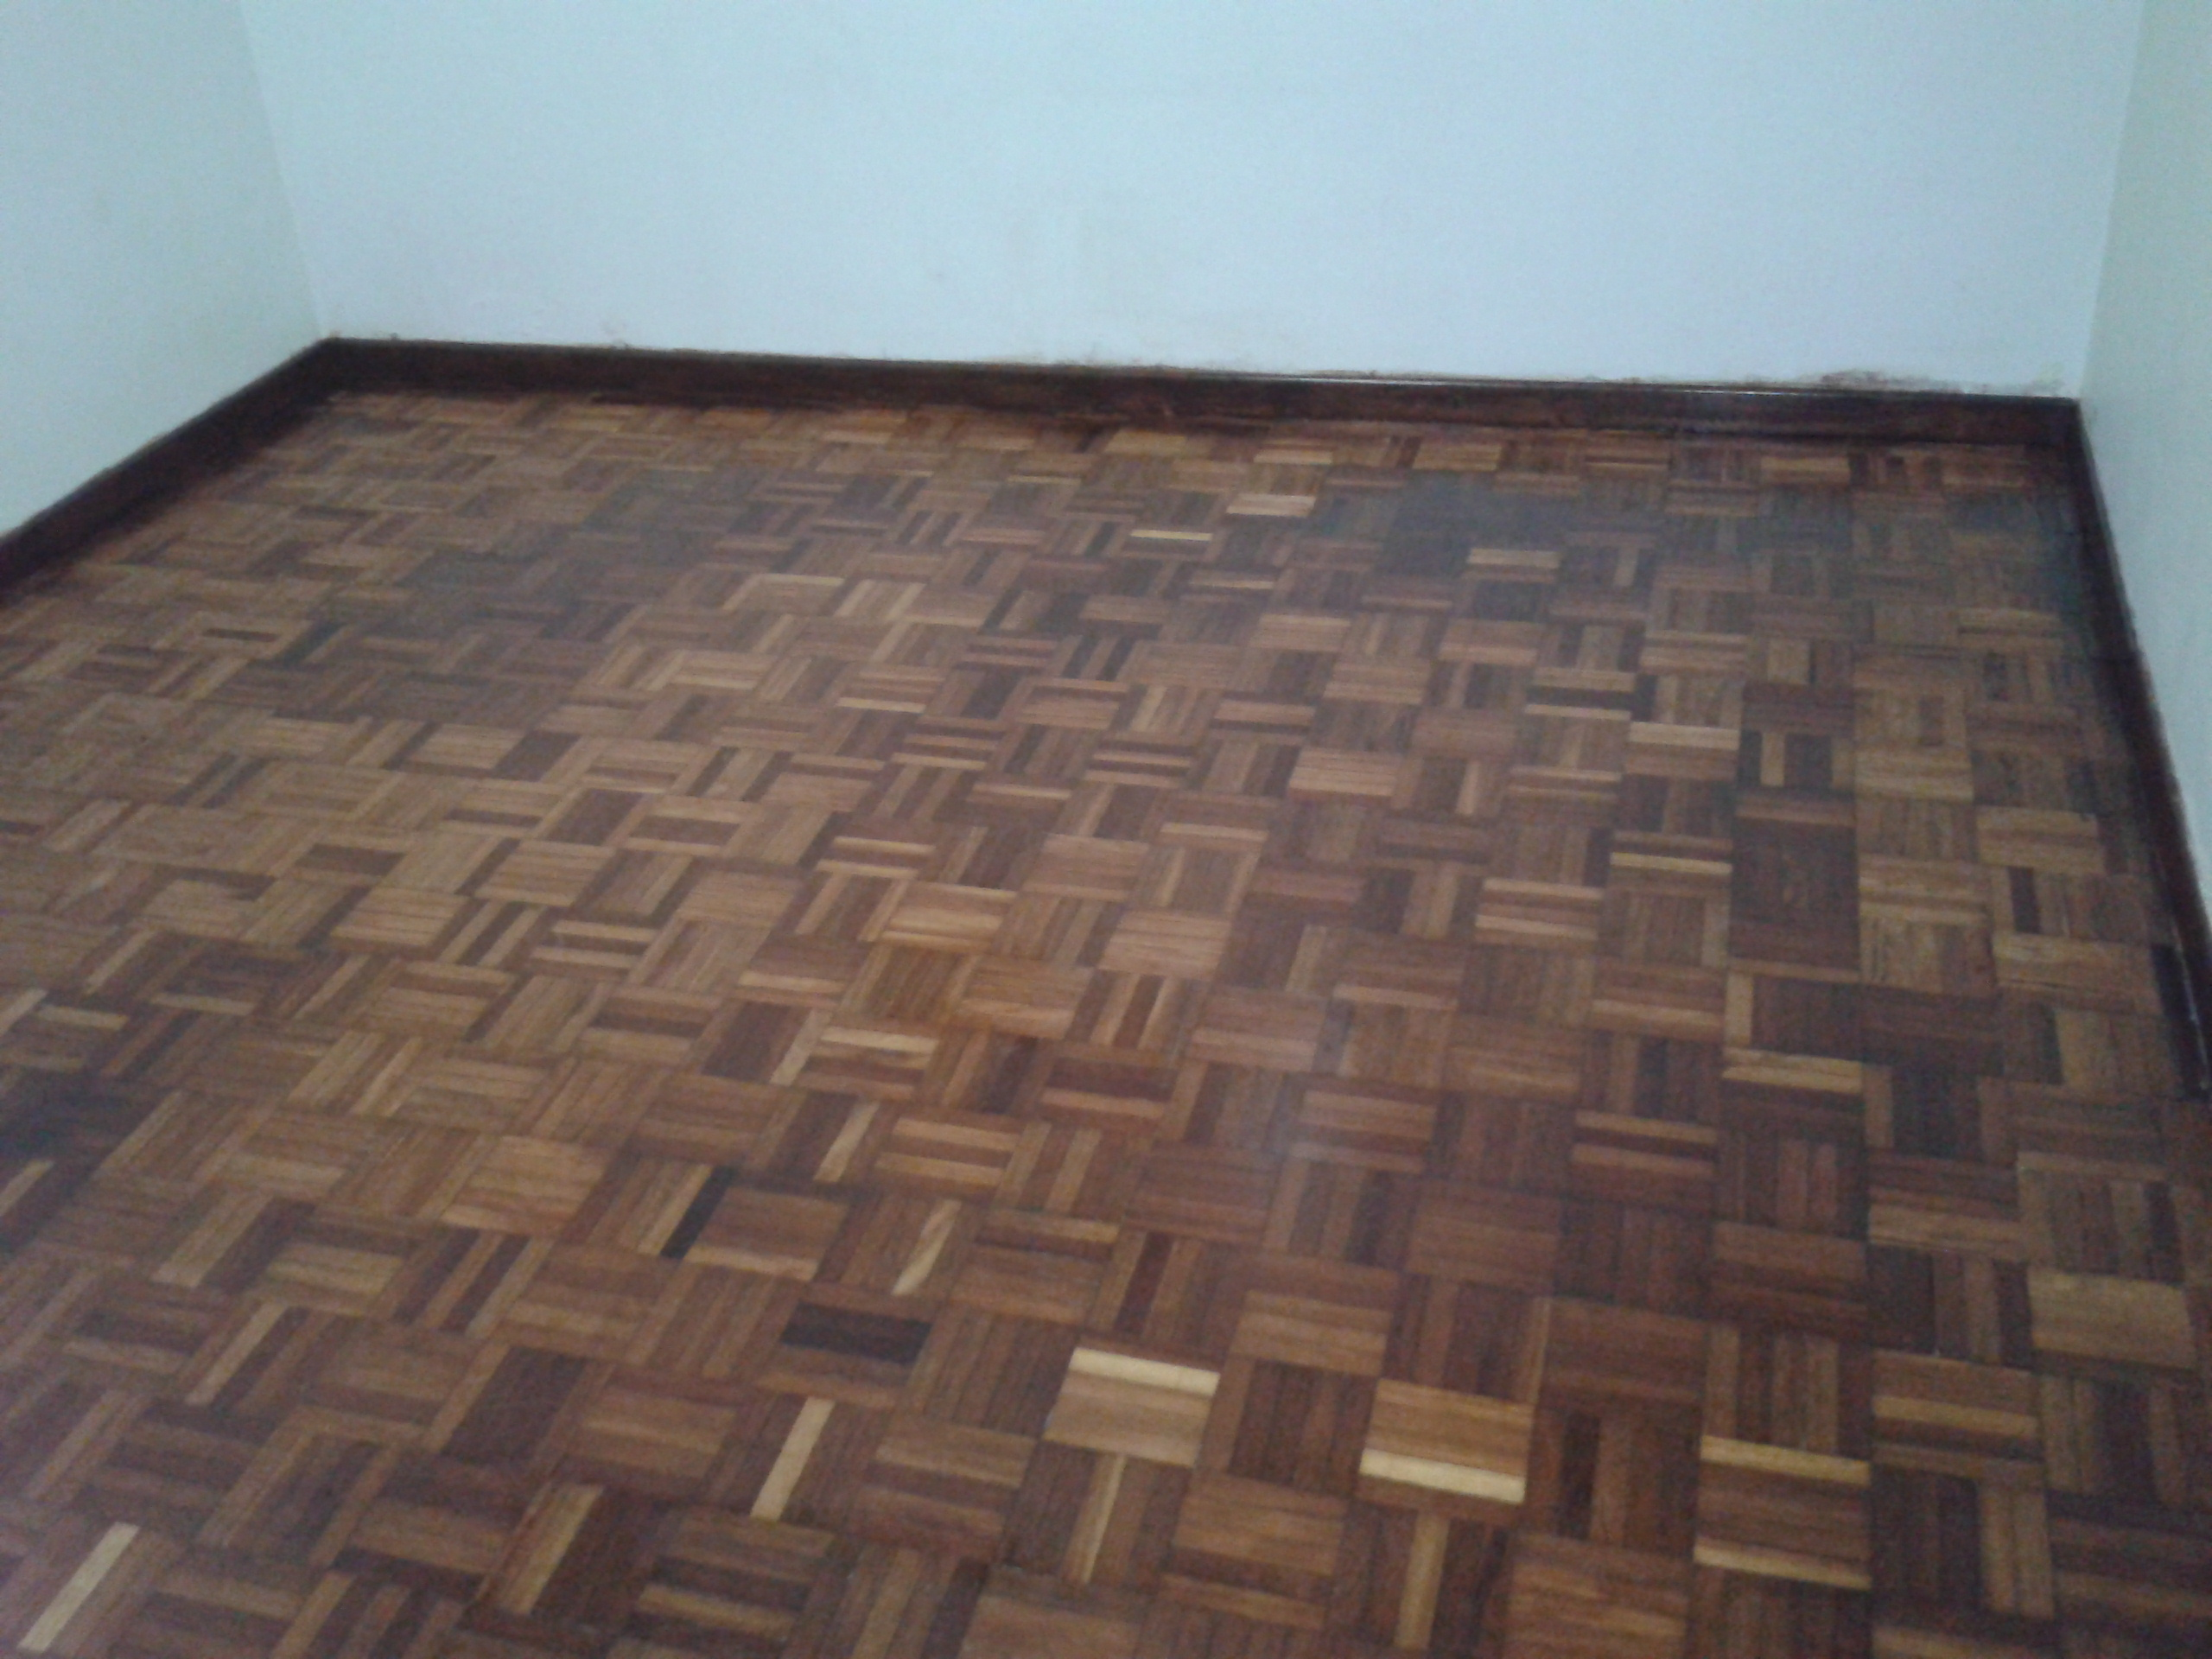 Diy how to repair your own parquet flooring mumsgather repair parquet flooring solutioingenieria Gallery